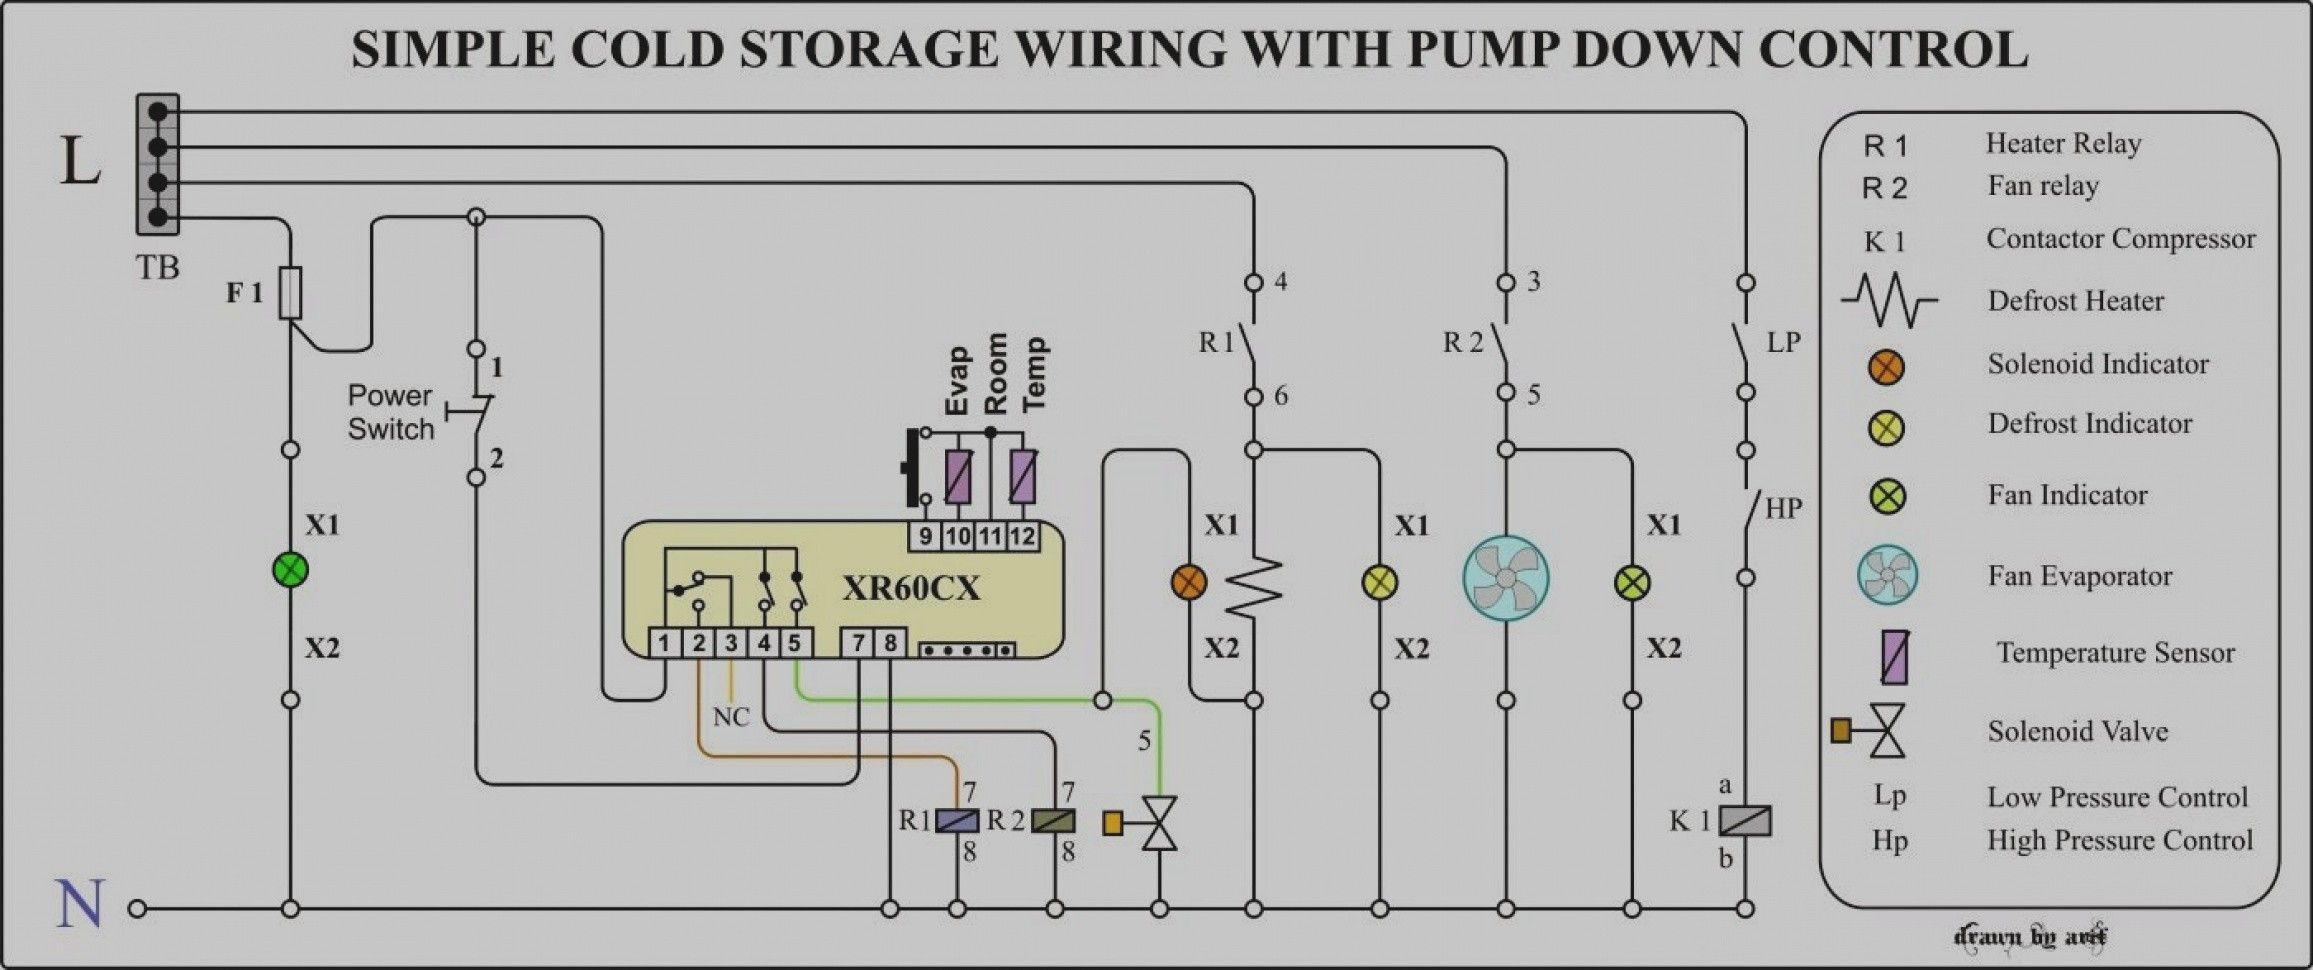 Unique Wiring Diagram for Ac Capacitor #diagramsample #